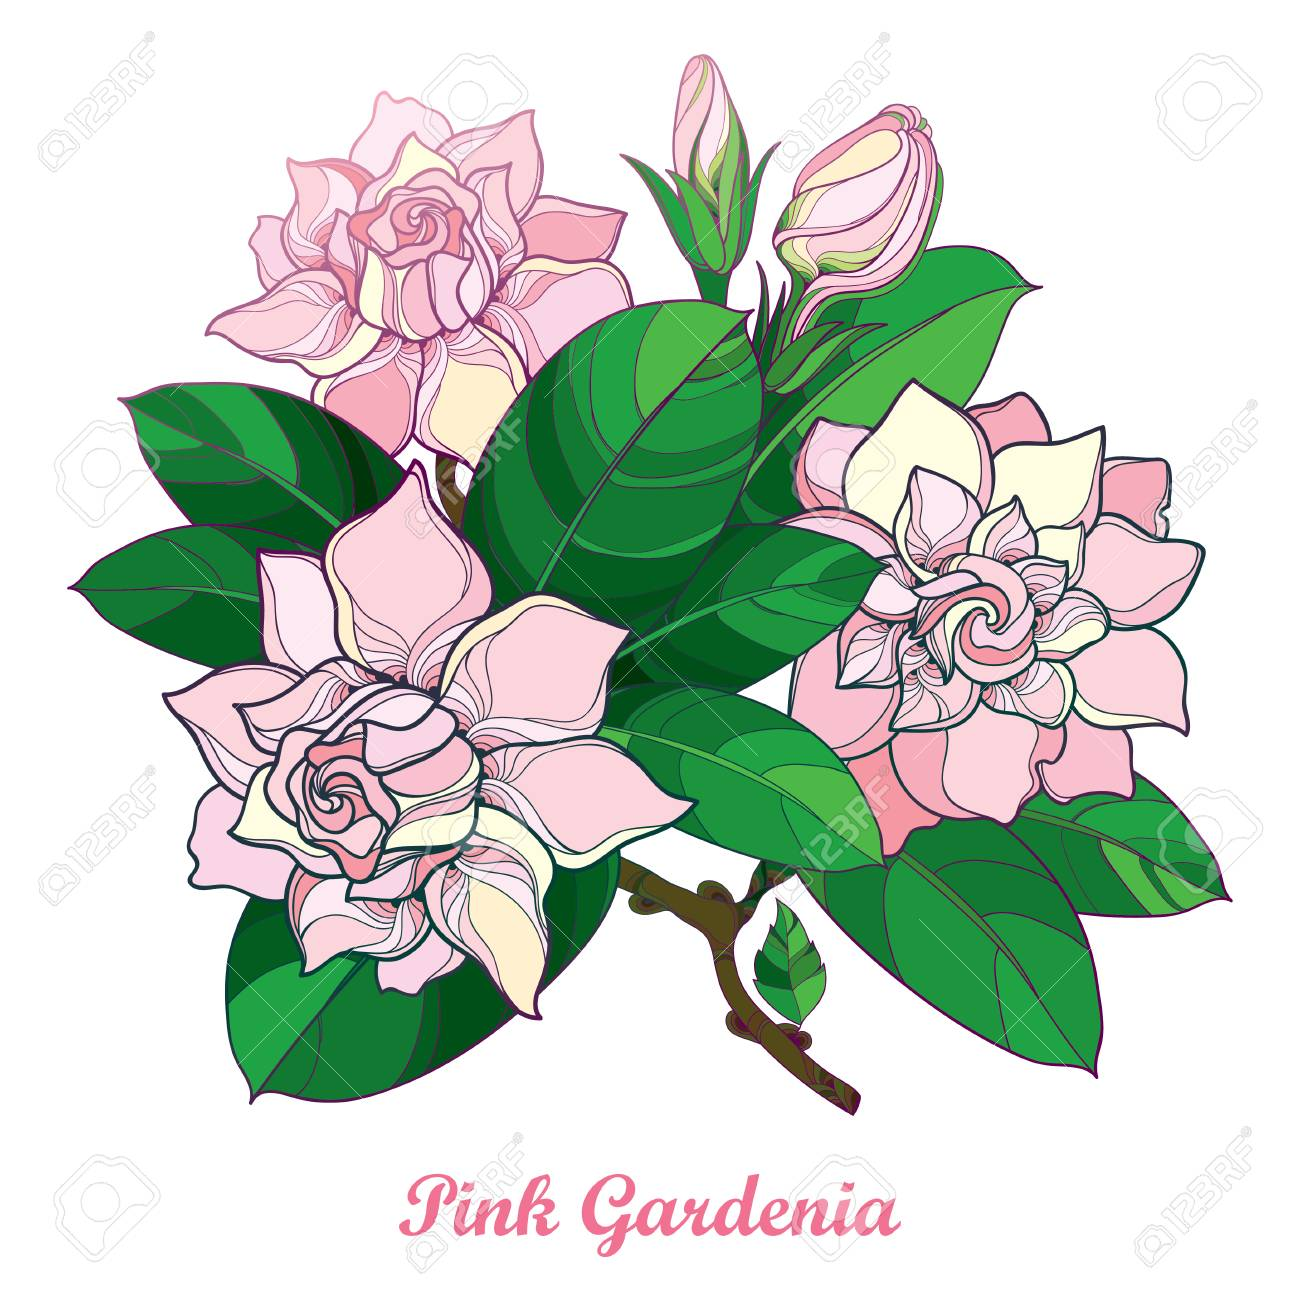 Outline Of Pink Gardenia Flower Bouquet, Bud And Ornate Green ...